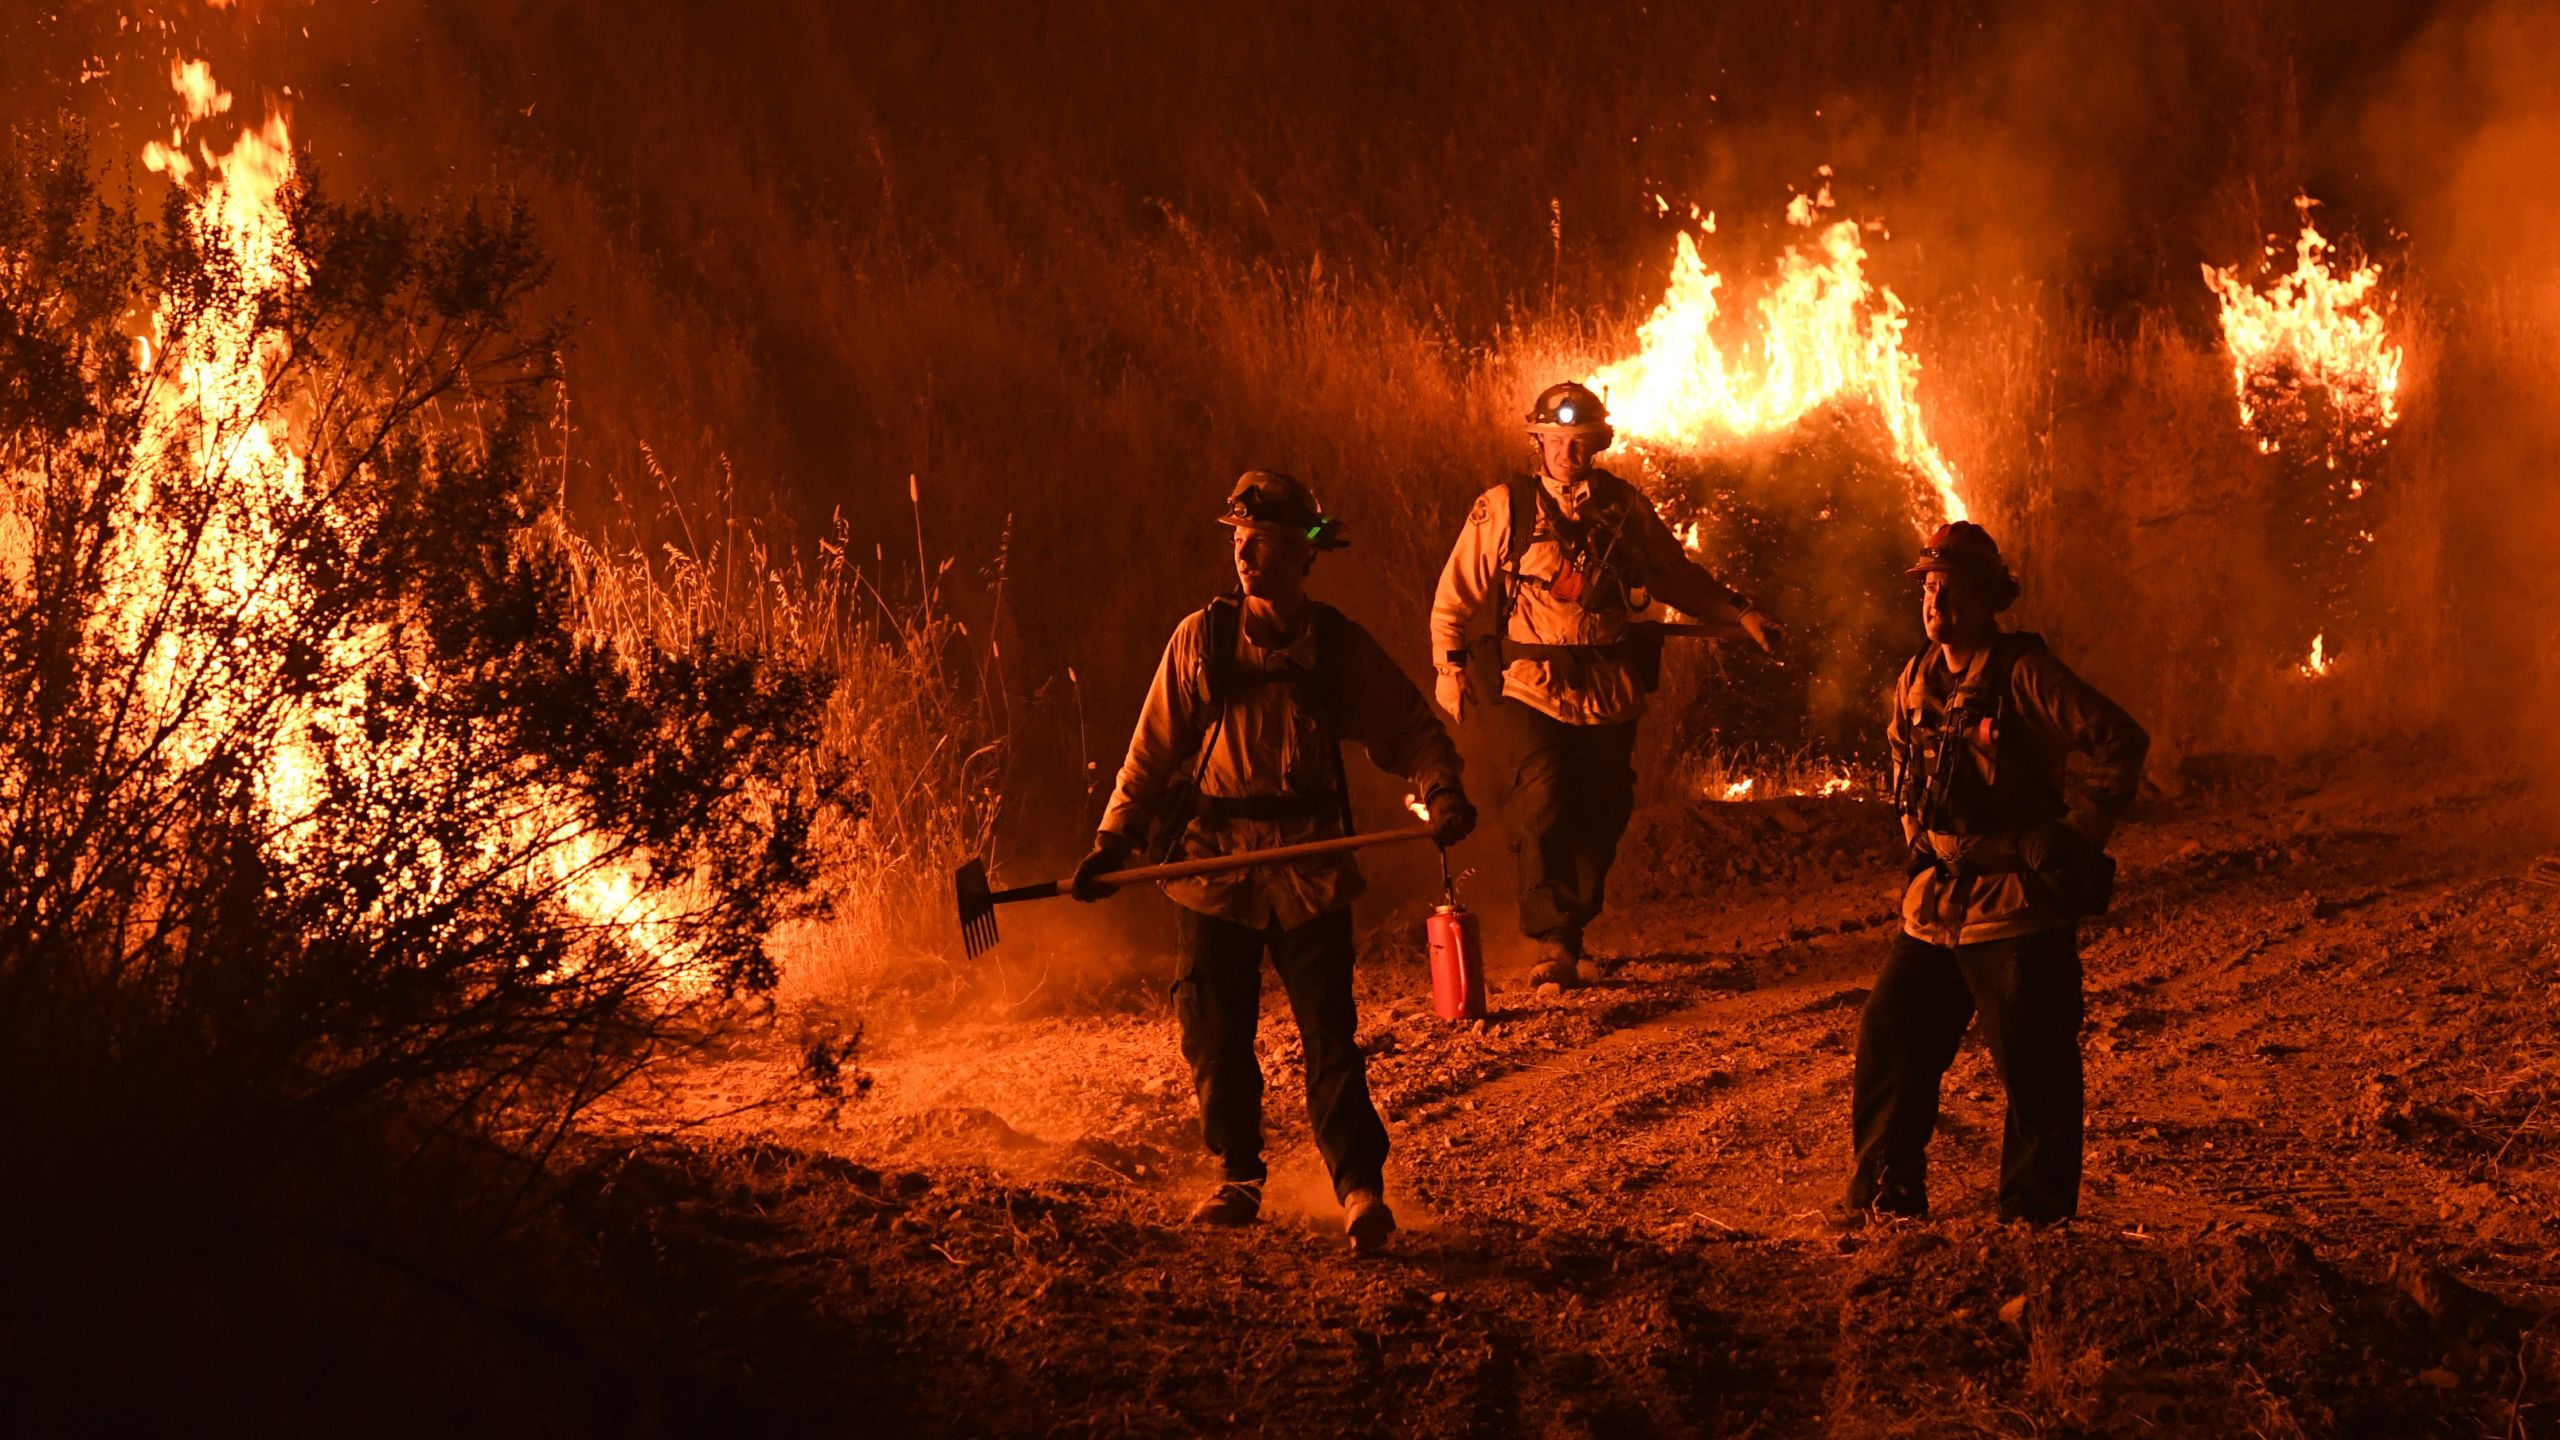 Firefighters conduct a controlled burn to defend houses against flames from the Ranch Fire, part of the Mendocino Complex Fire, as it continues to spreads toward the town of Upper Lake on Aug. 2, 2018. (Credit: Mark Ralston / AFP / Getty Images)